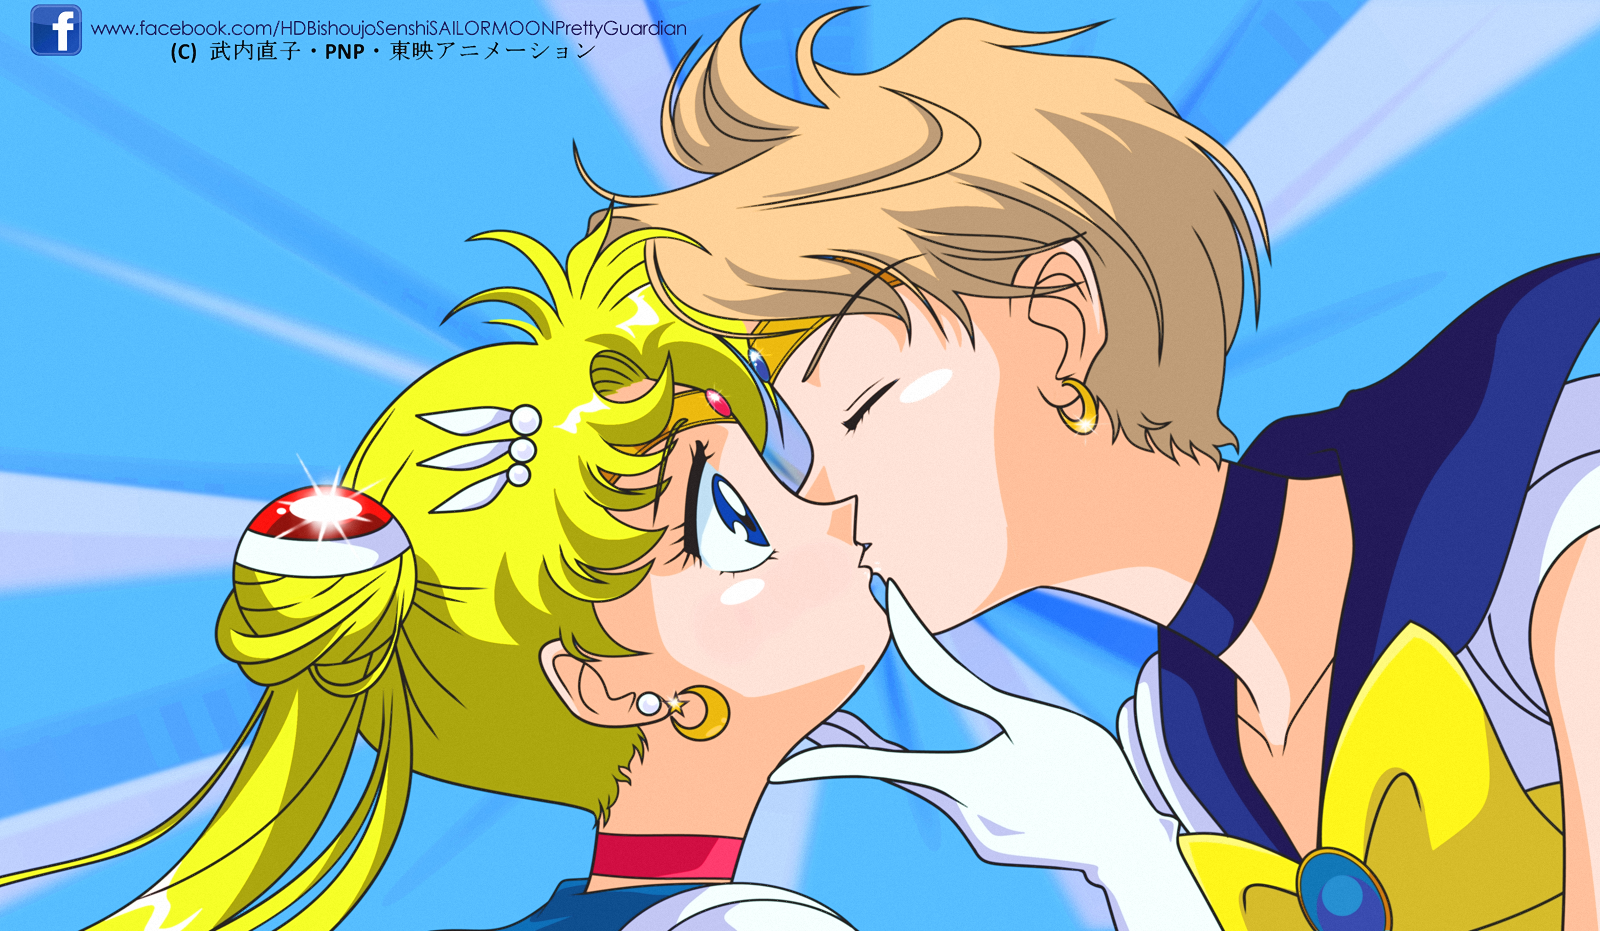 kiss the girl sailor moon: